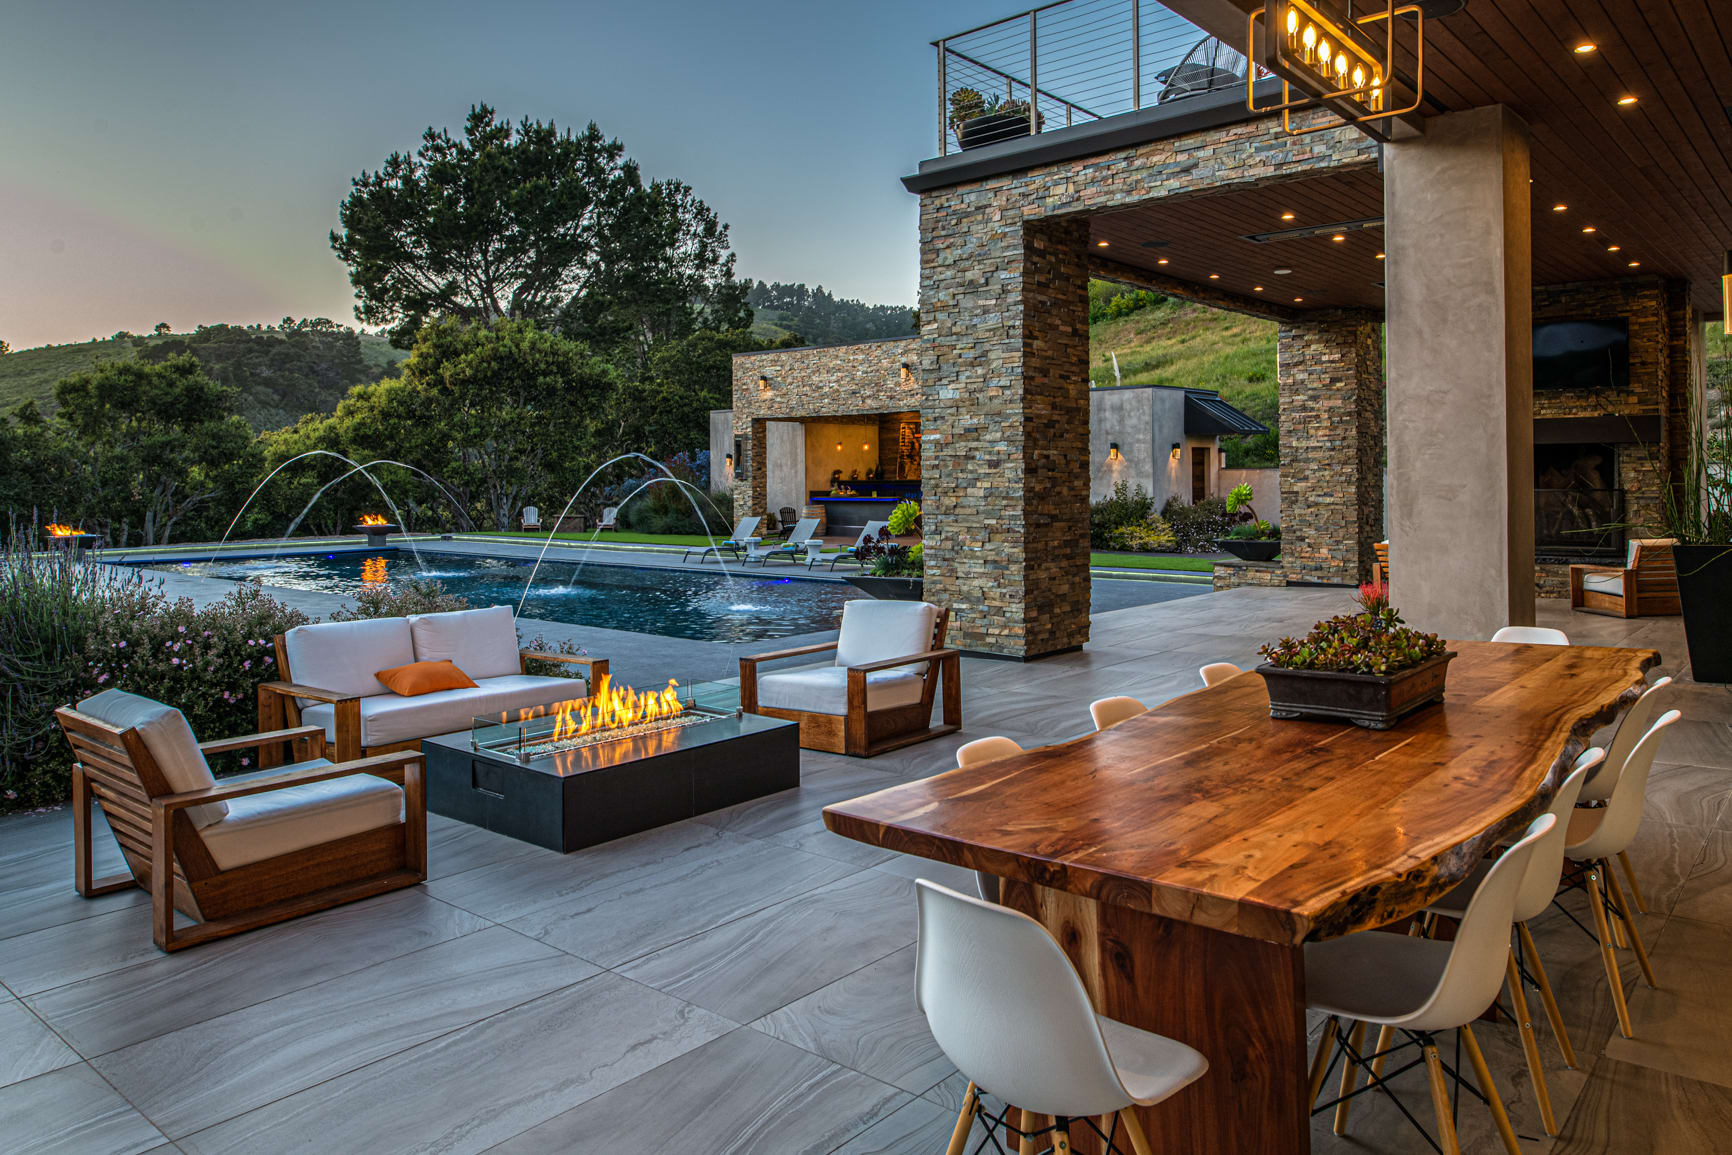 10 Alta Madera Ave, Carmel Valley - Featured in SF Chronicle